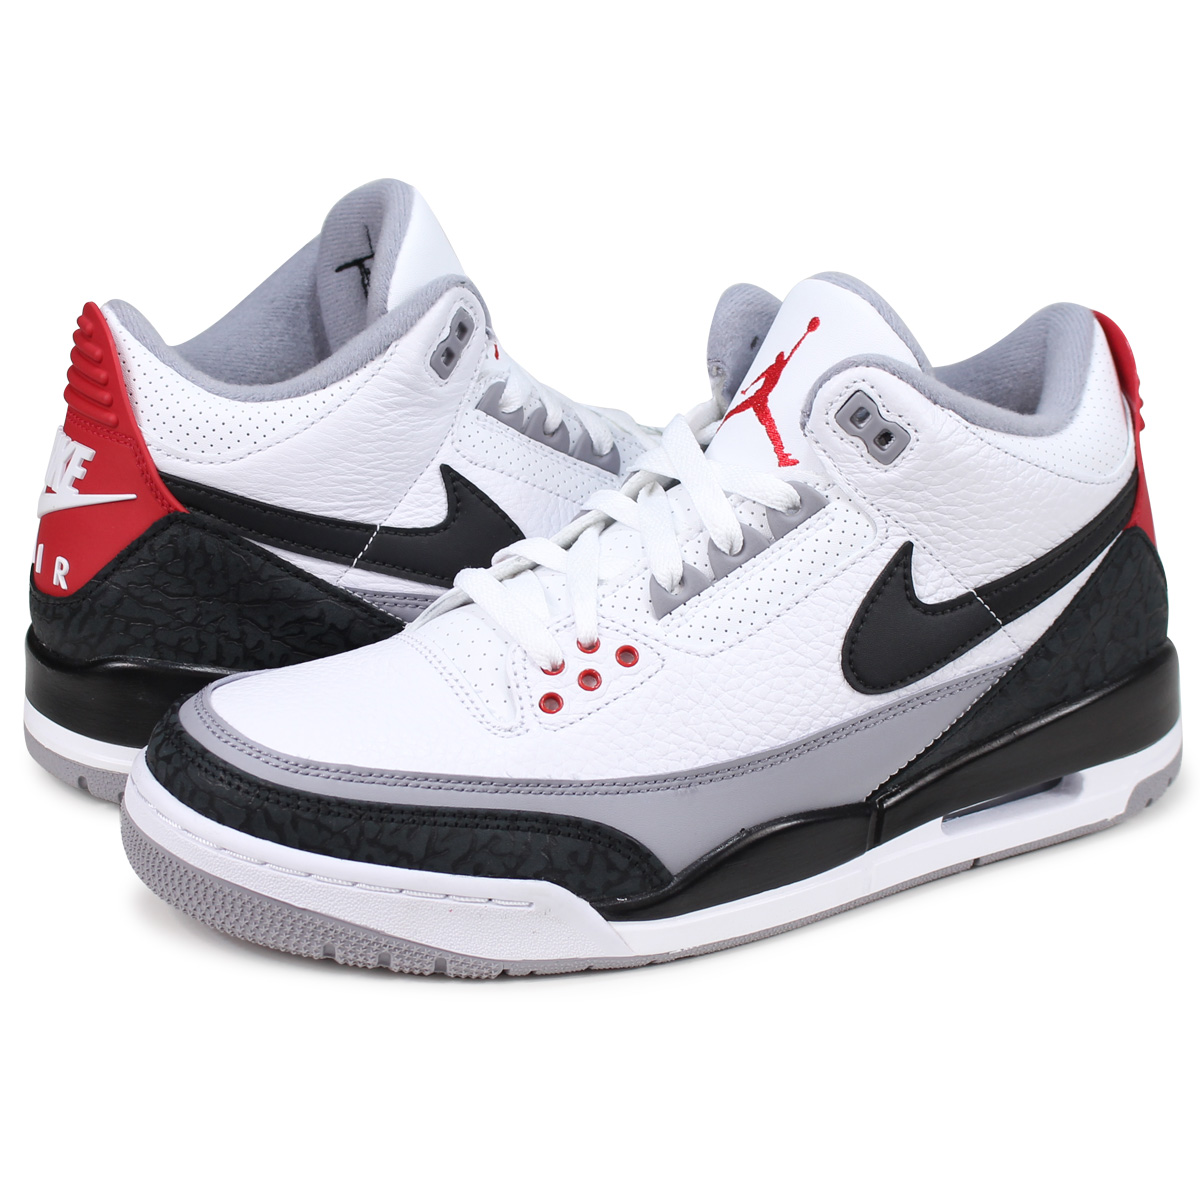 4933418b9d9 wholesale nike air jordan 3 retro tinker nike air jordan 3 nostalgic sneakers  men aq3835 160